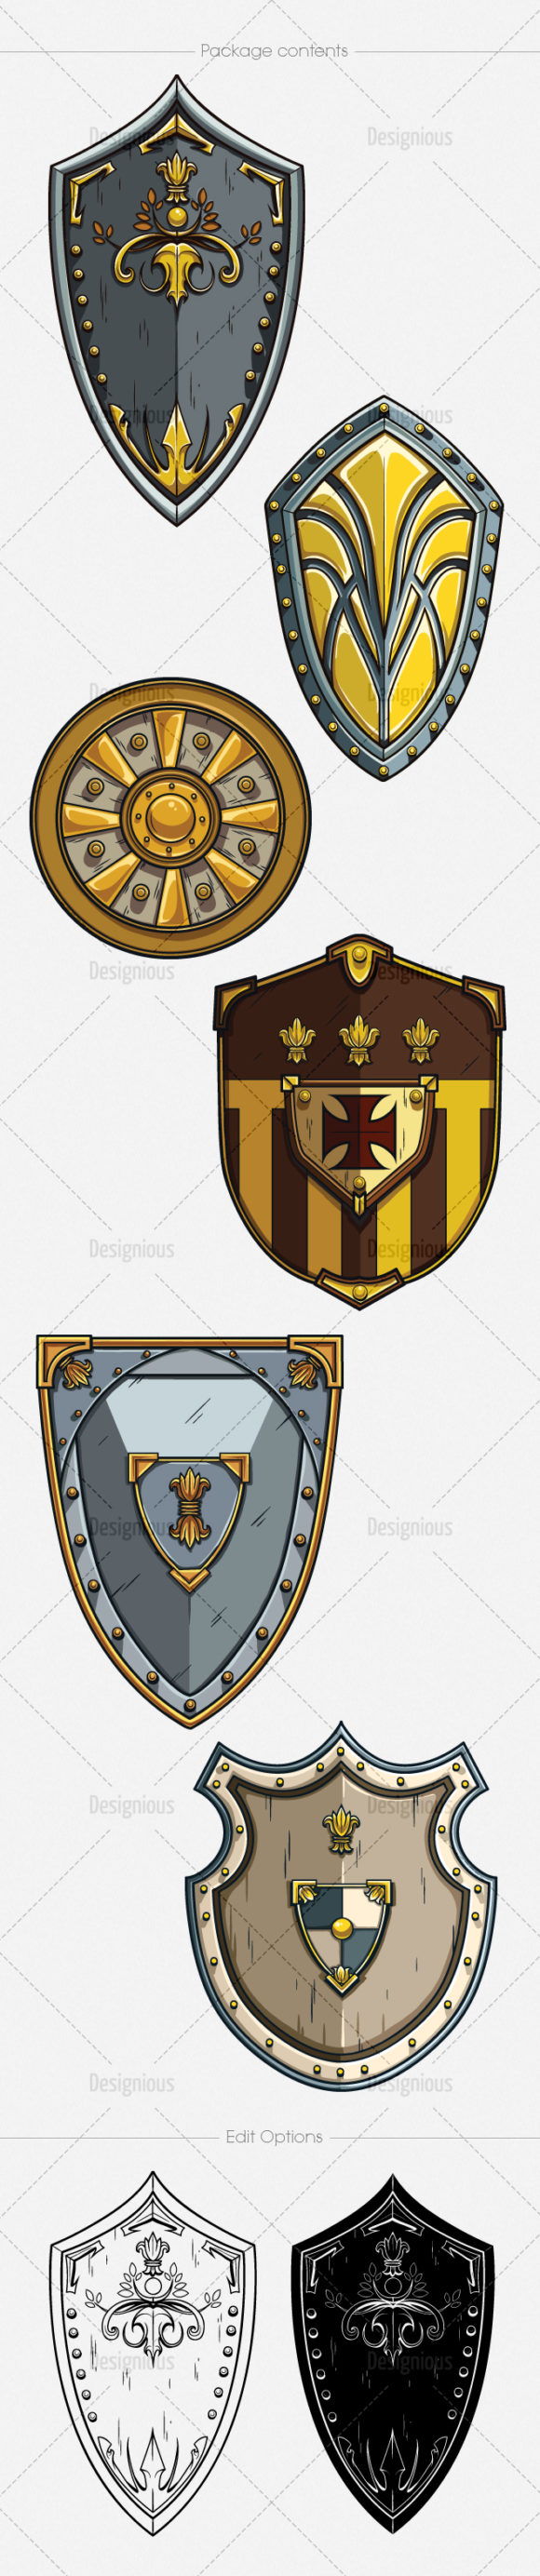 Shields Vector Pack 4 6